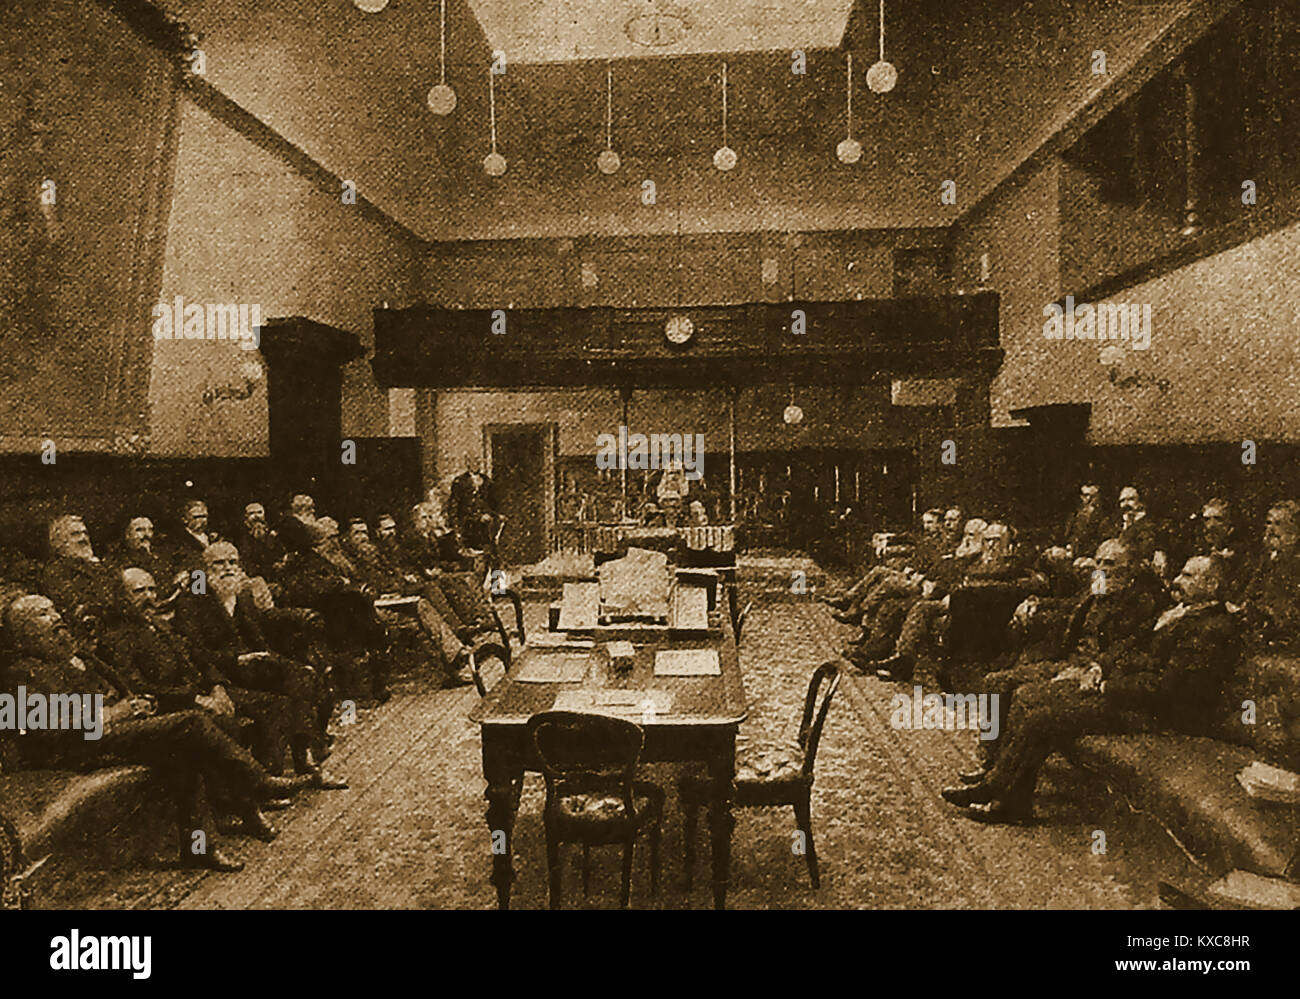 TASMANIA GOVERNMENT - PARLIAMENT . An old illustration showing the Tasmania House of Assembly in Session circa 1900 - Stock Image